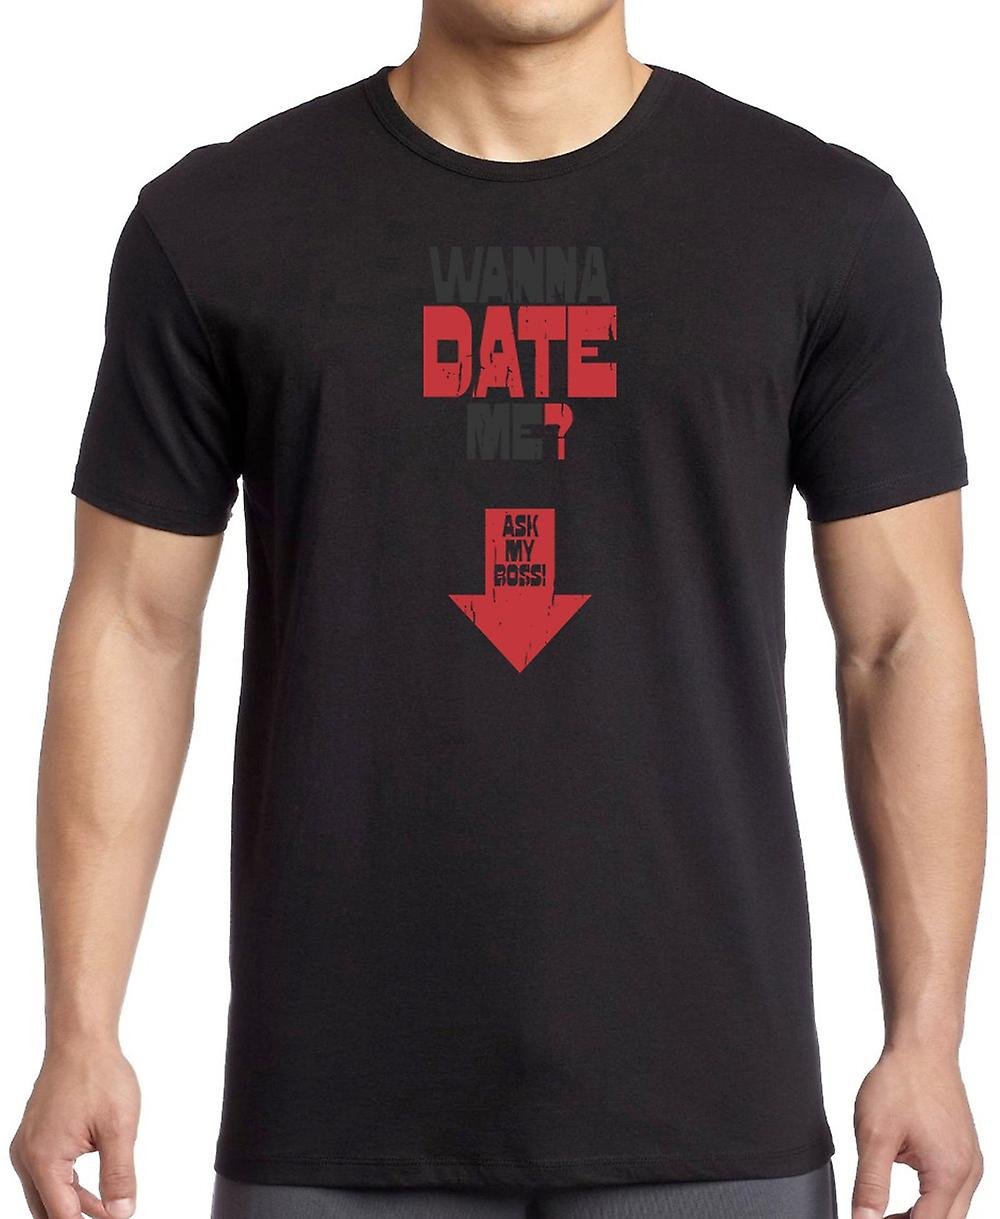 Wanna Date Me - Ask My Boss T Shirt